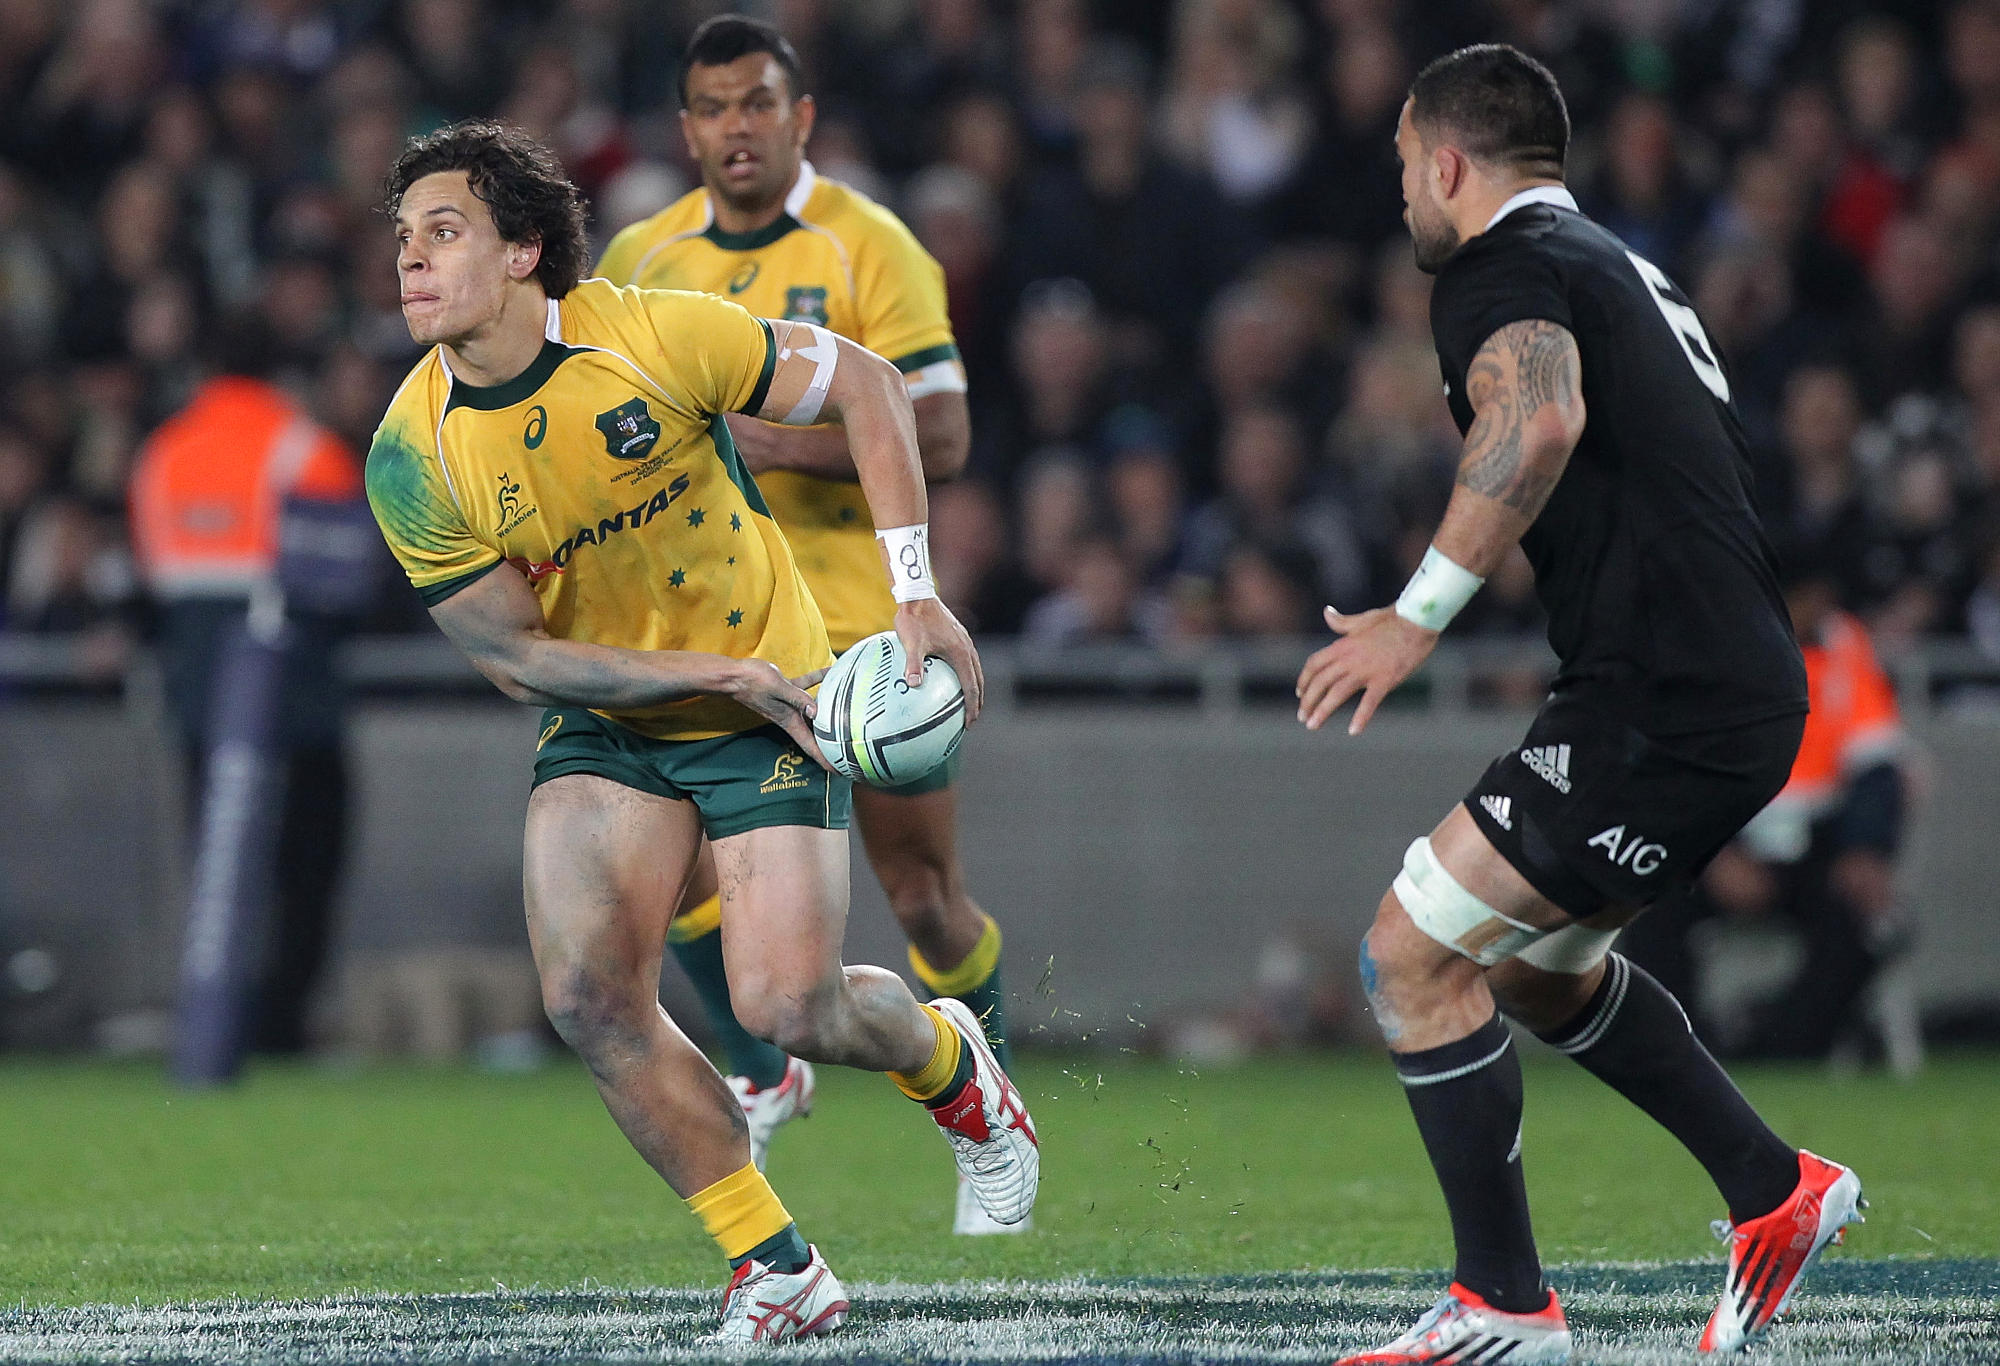 Matt Toomua passes for the Wallabies